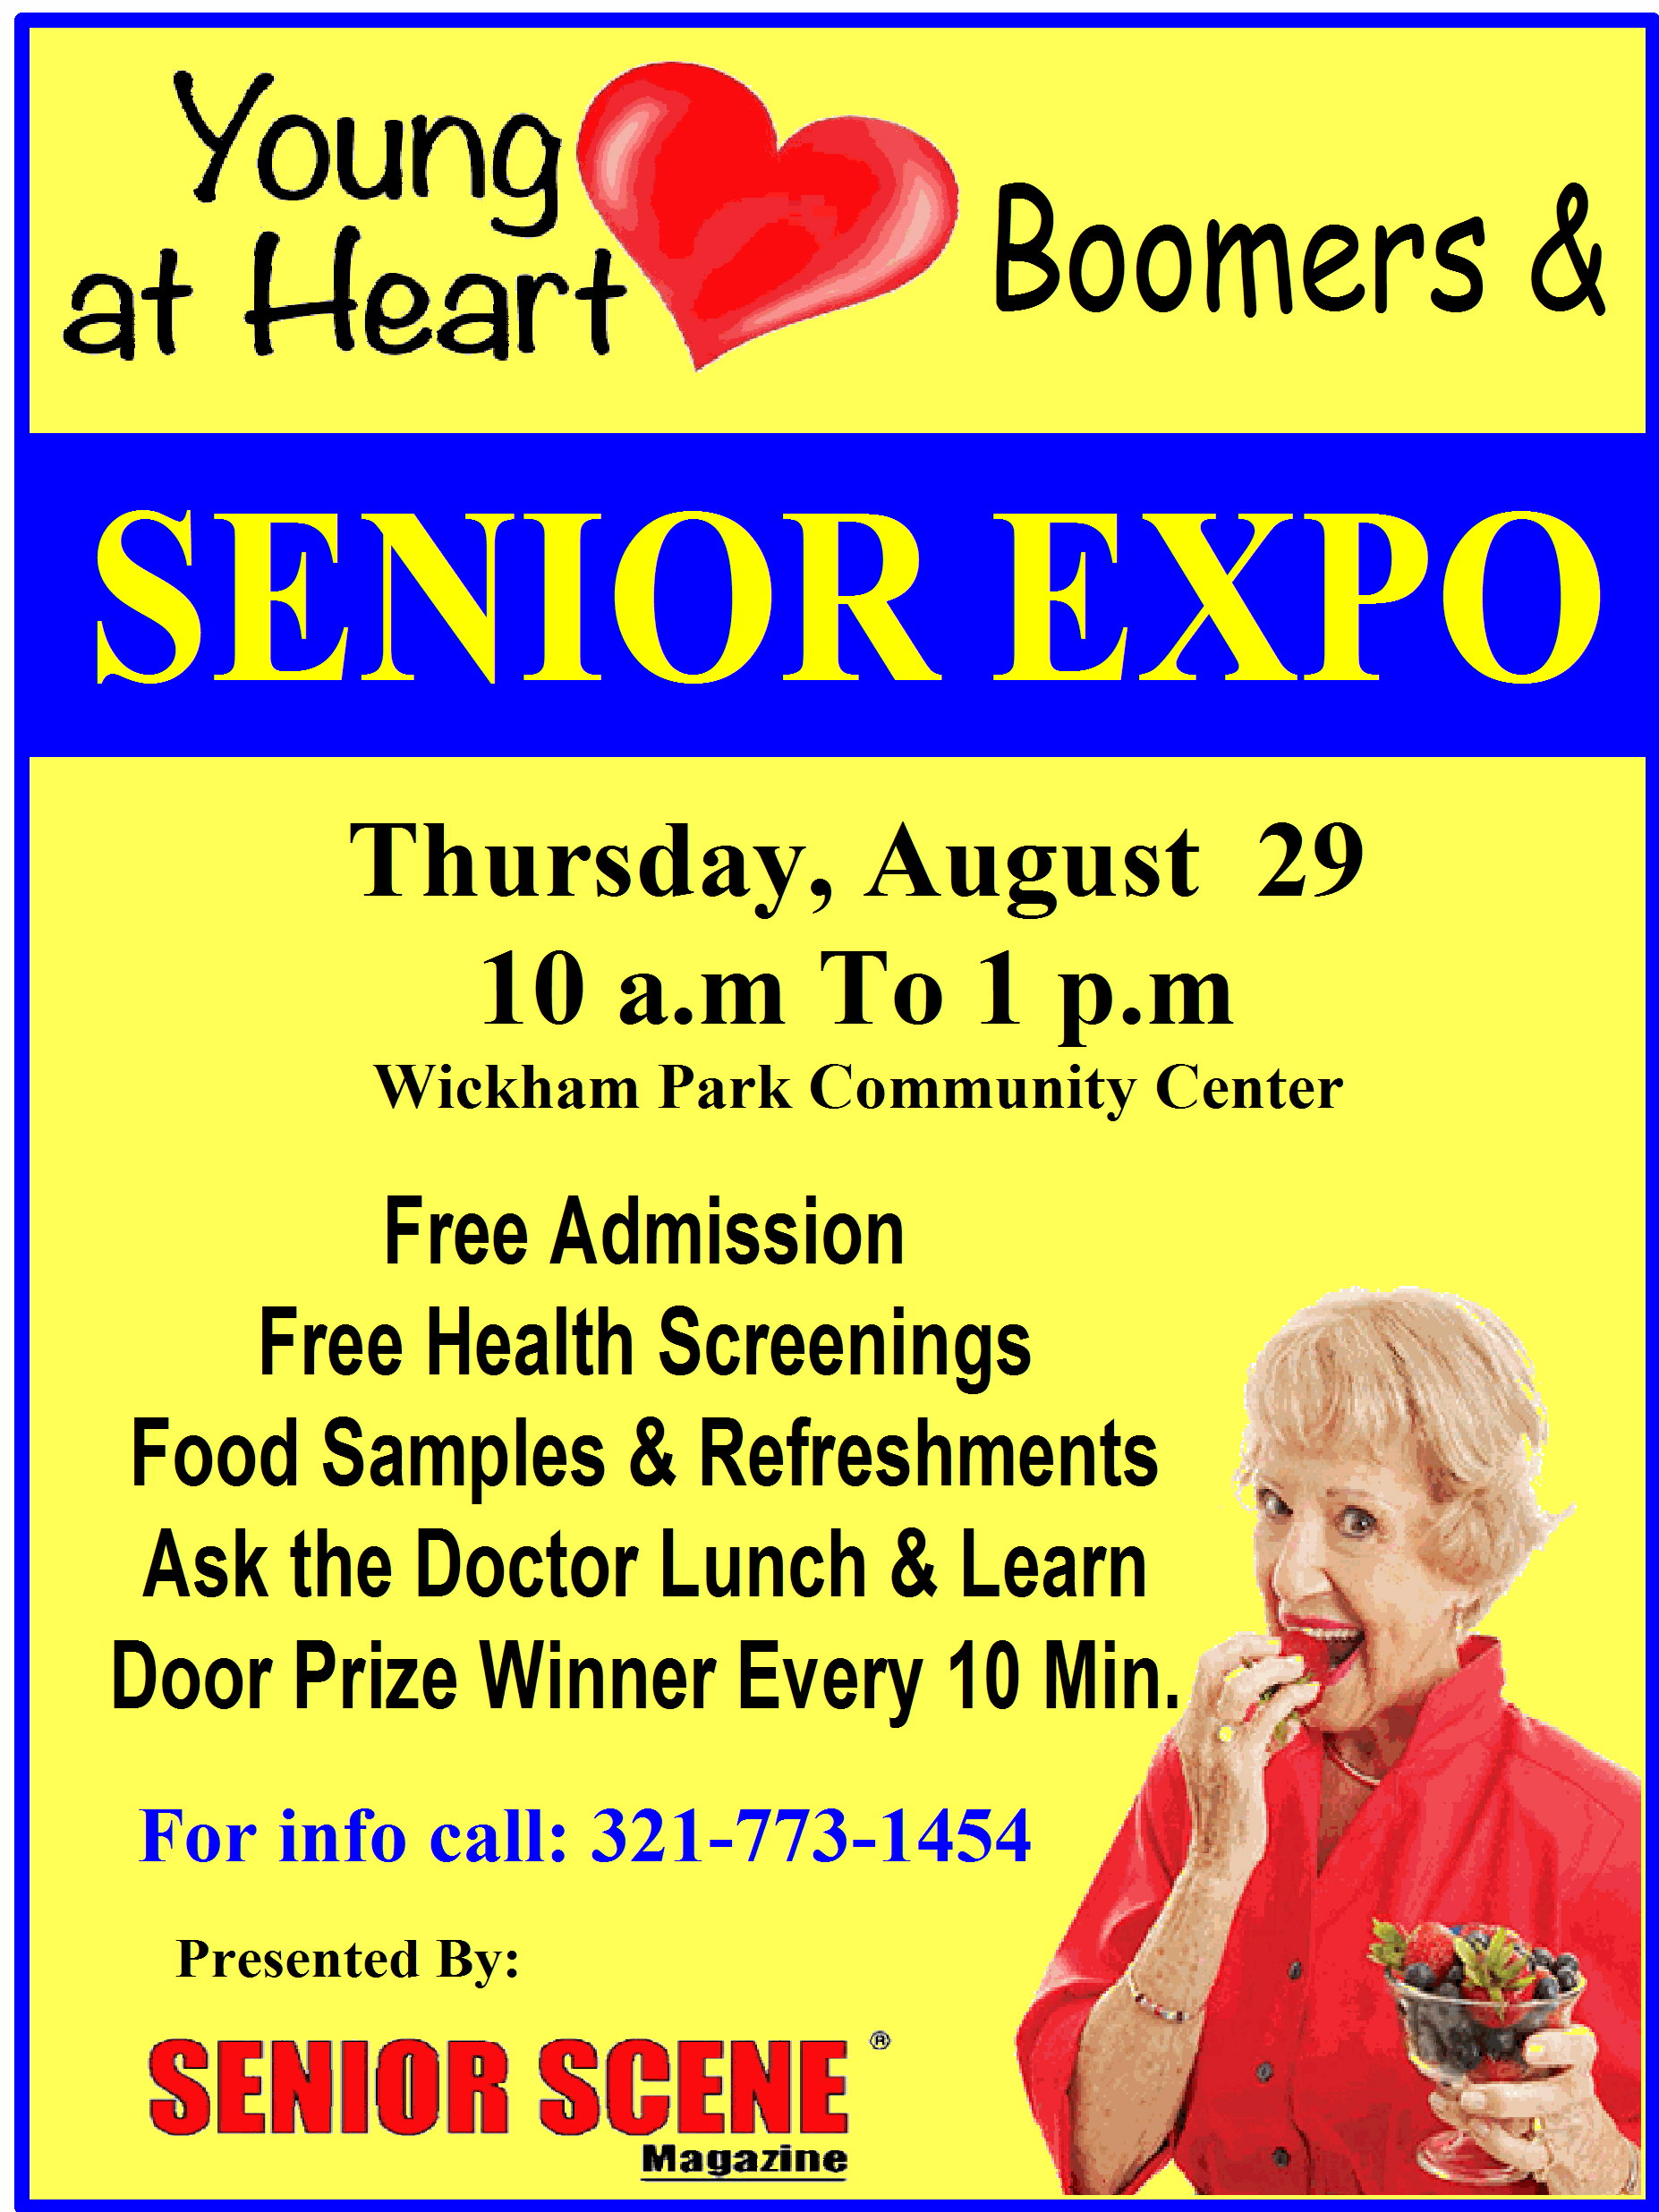 Young at Heart Boomers & Senior Expo presented by Senior Scene Magazine